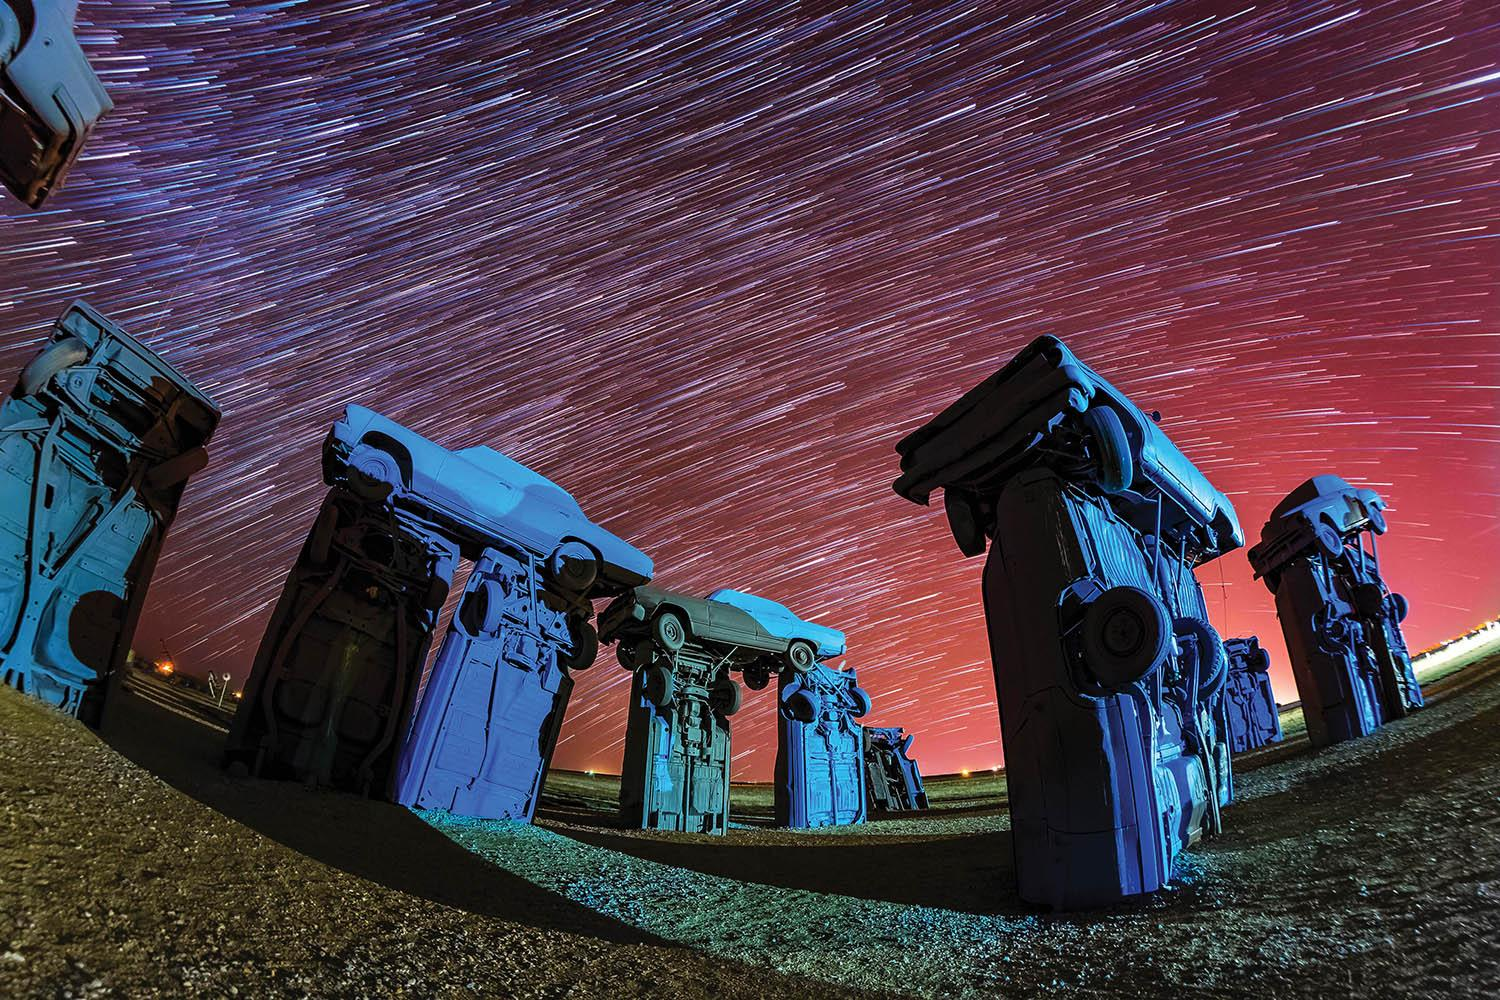 <p>Gavin Heffernan and Harun Mehmedinovic travelled more than 150,000 miles to a staggering 500 locations across North America in order to capture the works. (SKYGLOW/CATERS NEWS) </p>